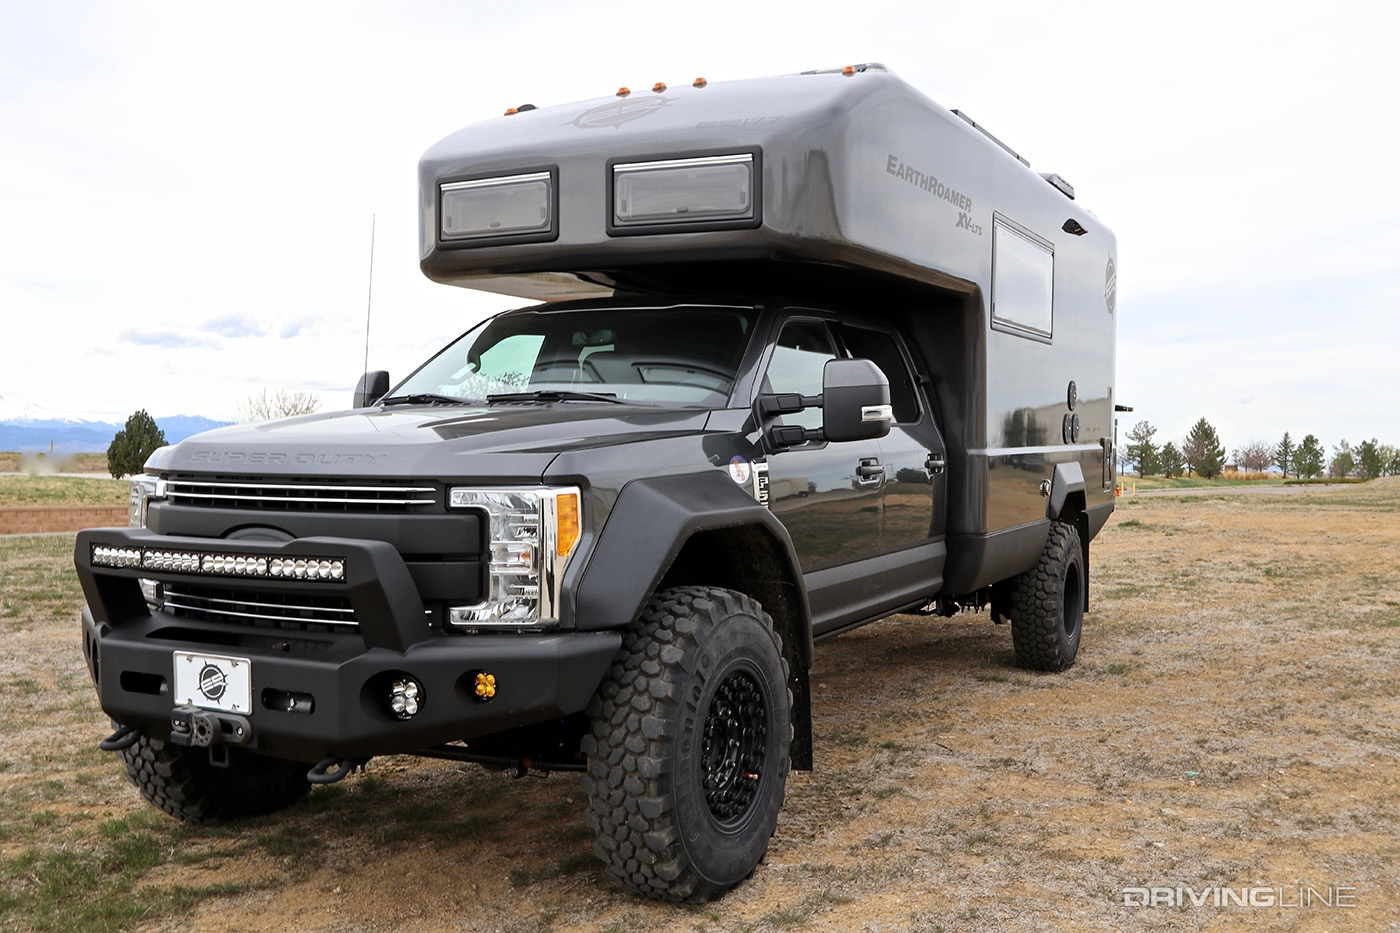 6 End-of-World Overland Rides Designed To Outlive the Apocalypse